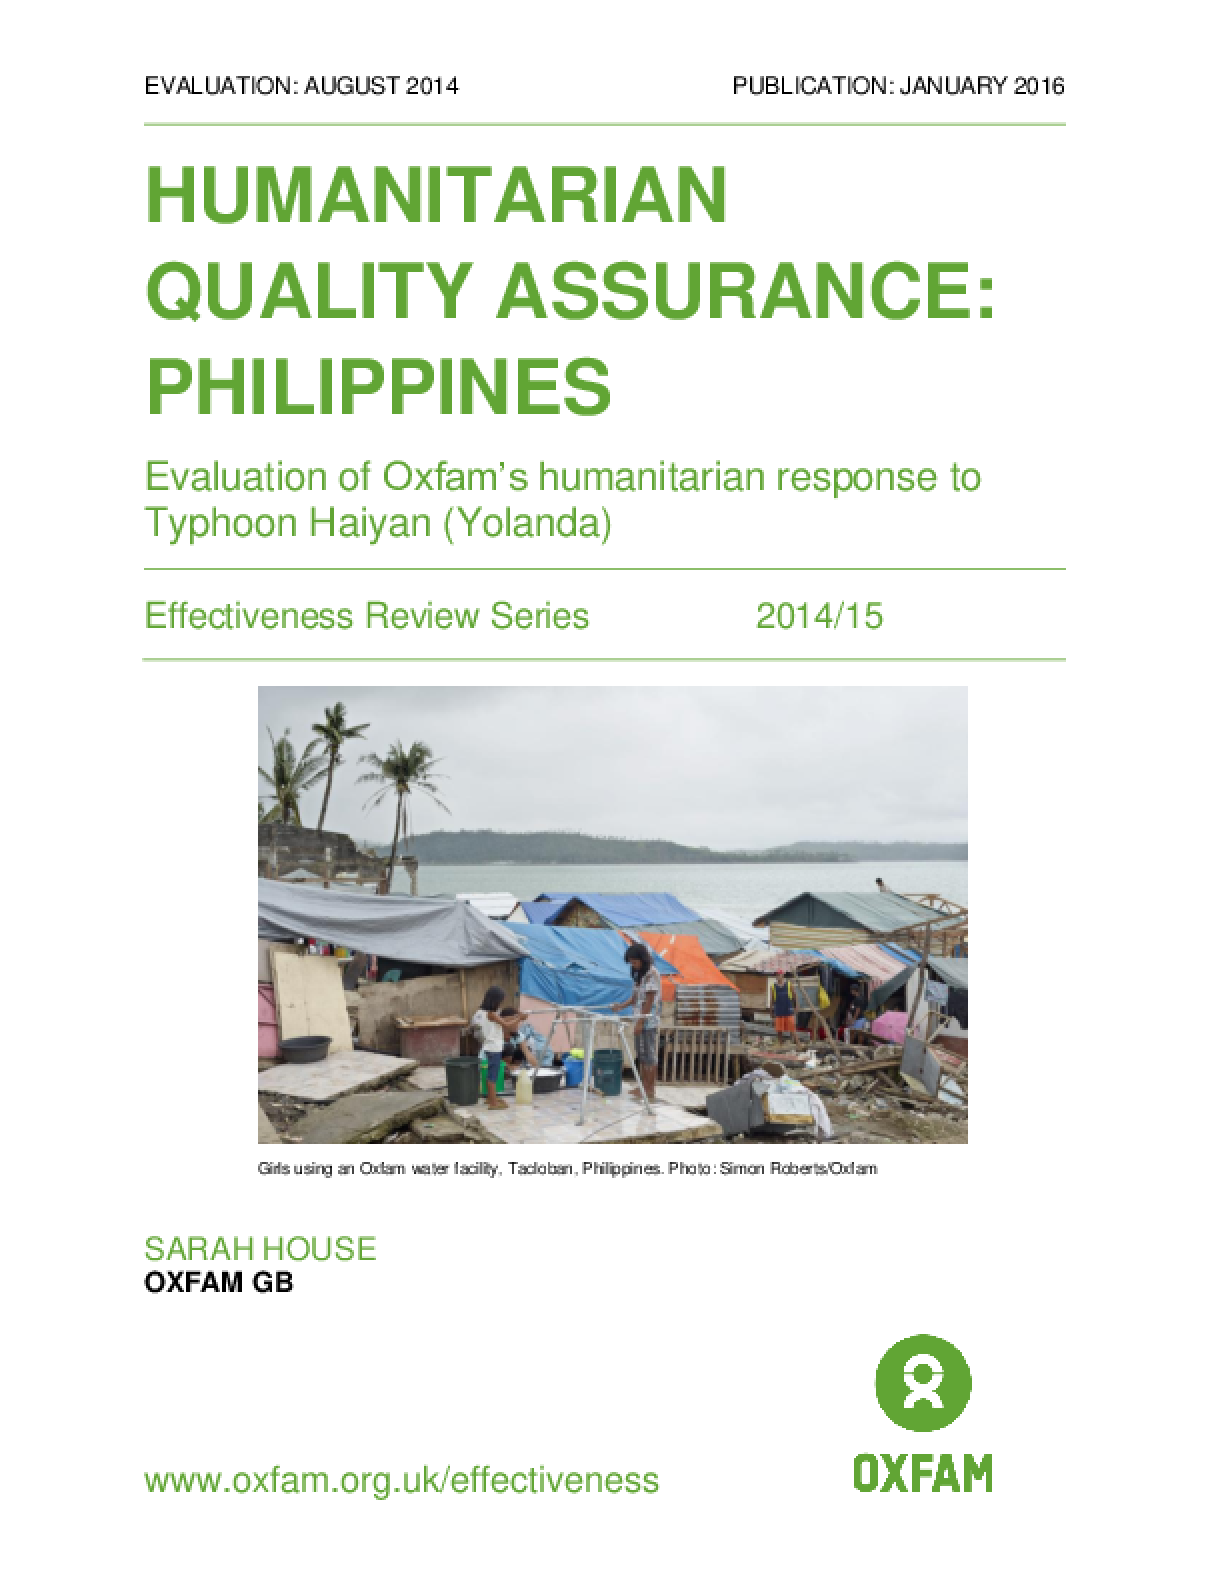 Humanitarian Quality Assurance - Philippines: Evaluation of Oxfam's humanitarian response to Typhoon Haiyan (Yolanda)